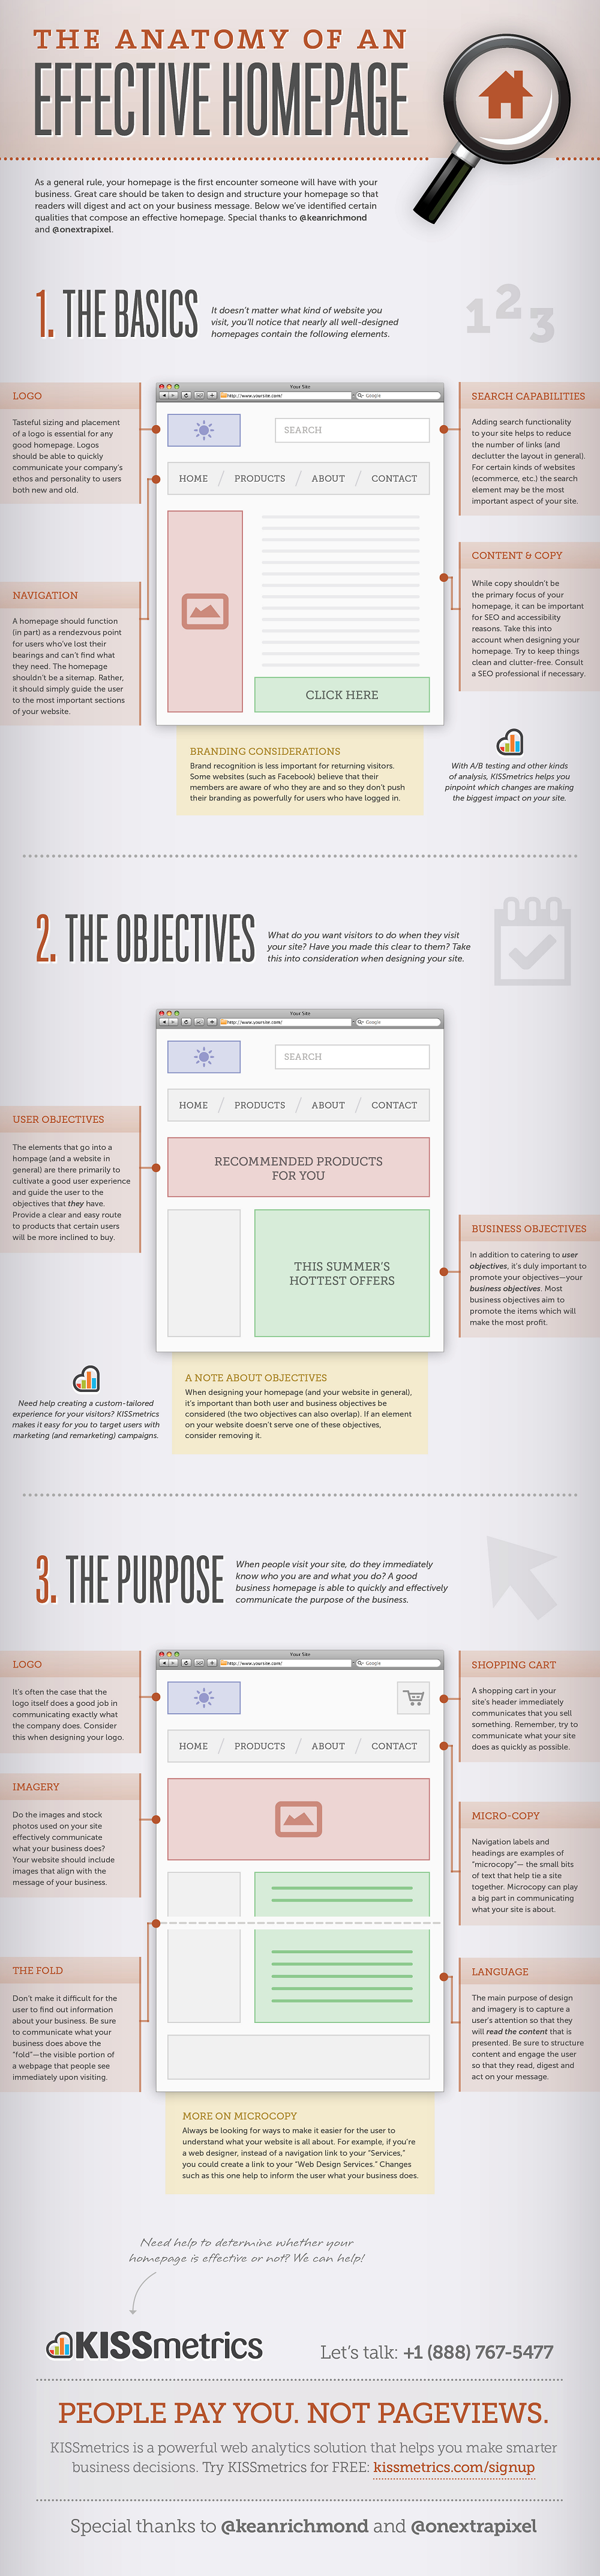 effective webdesign layout infographic